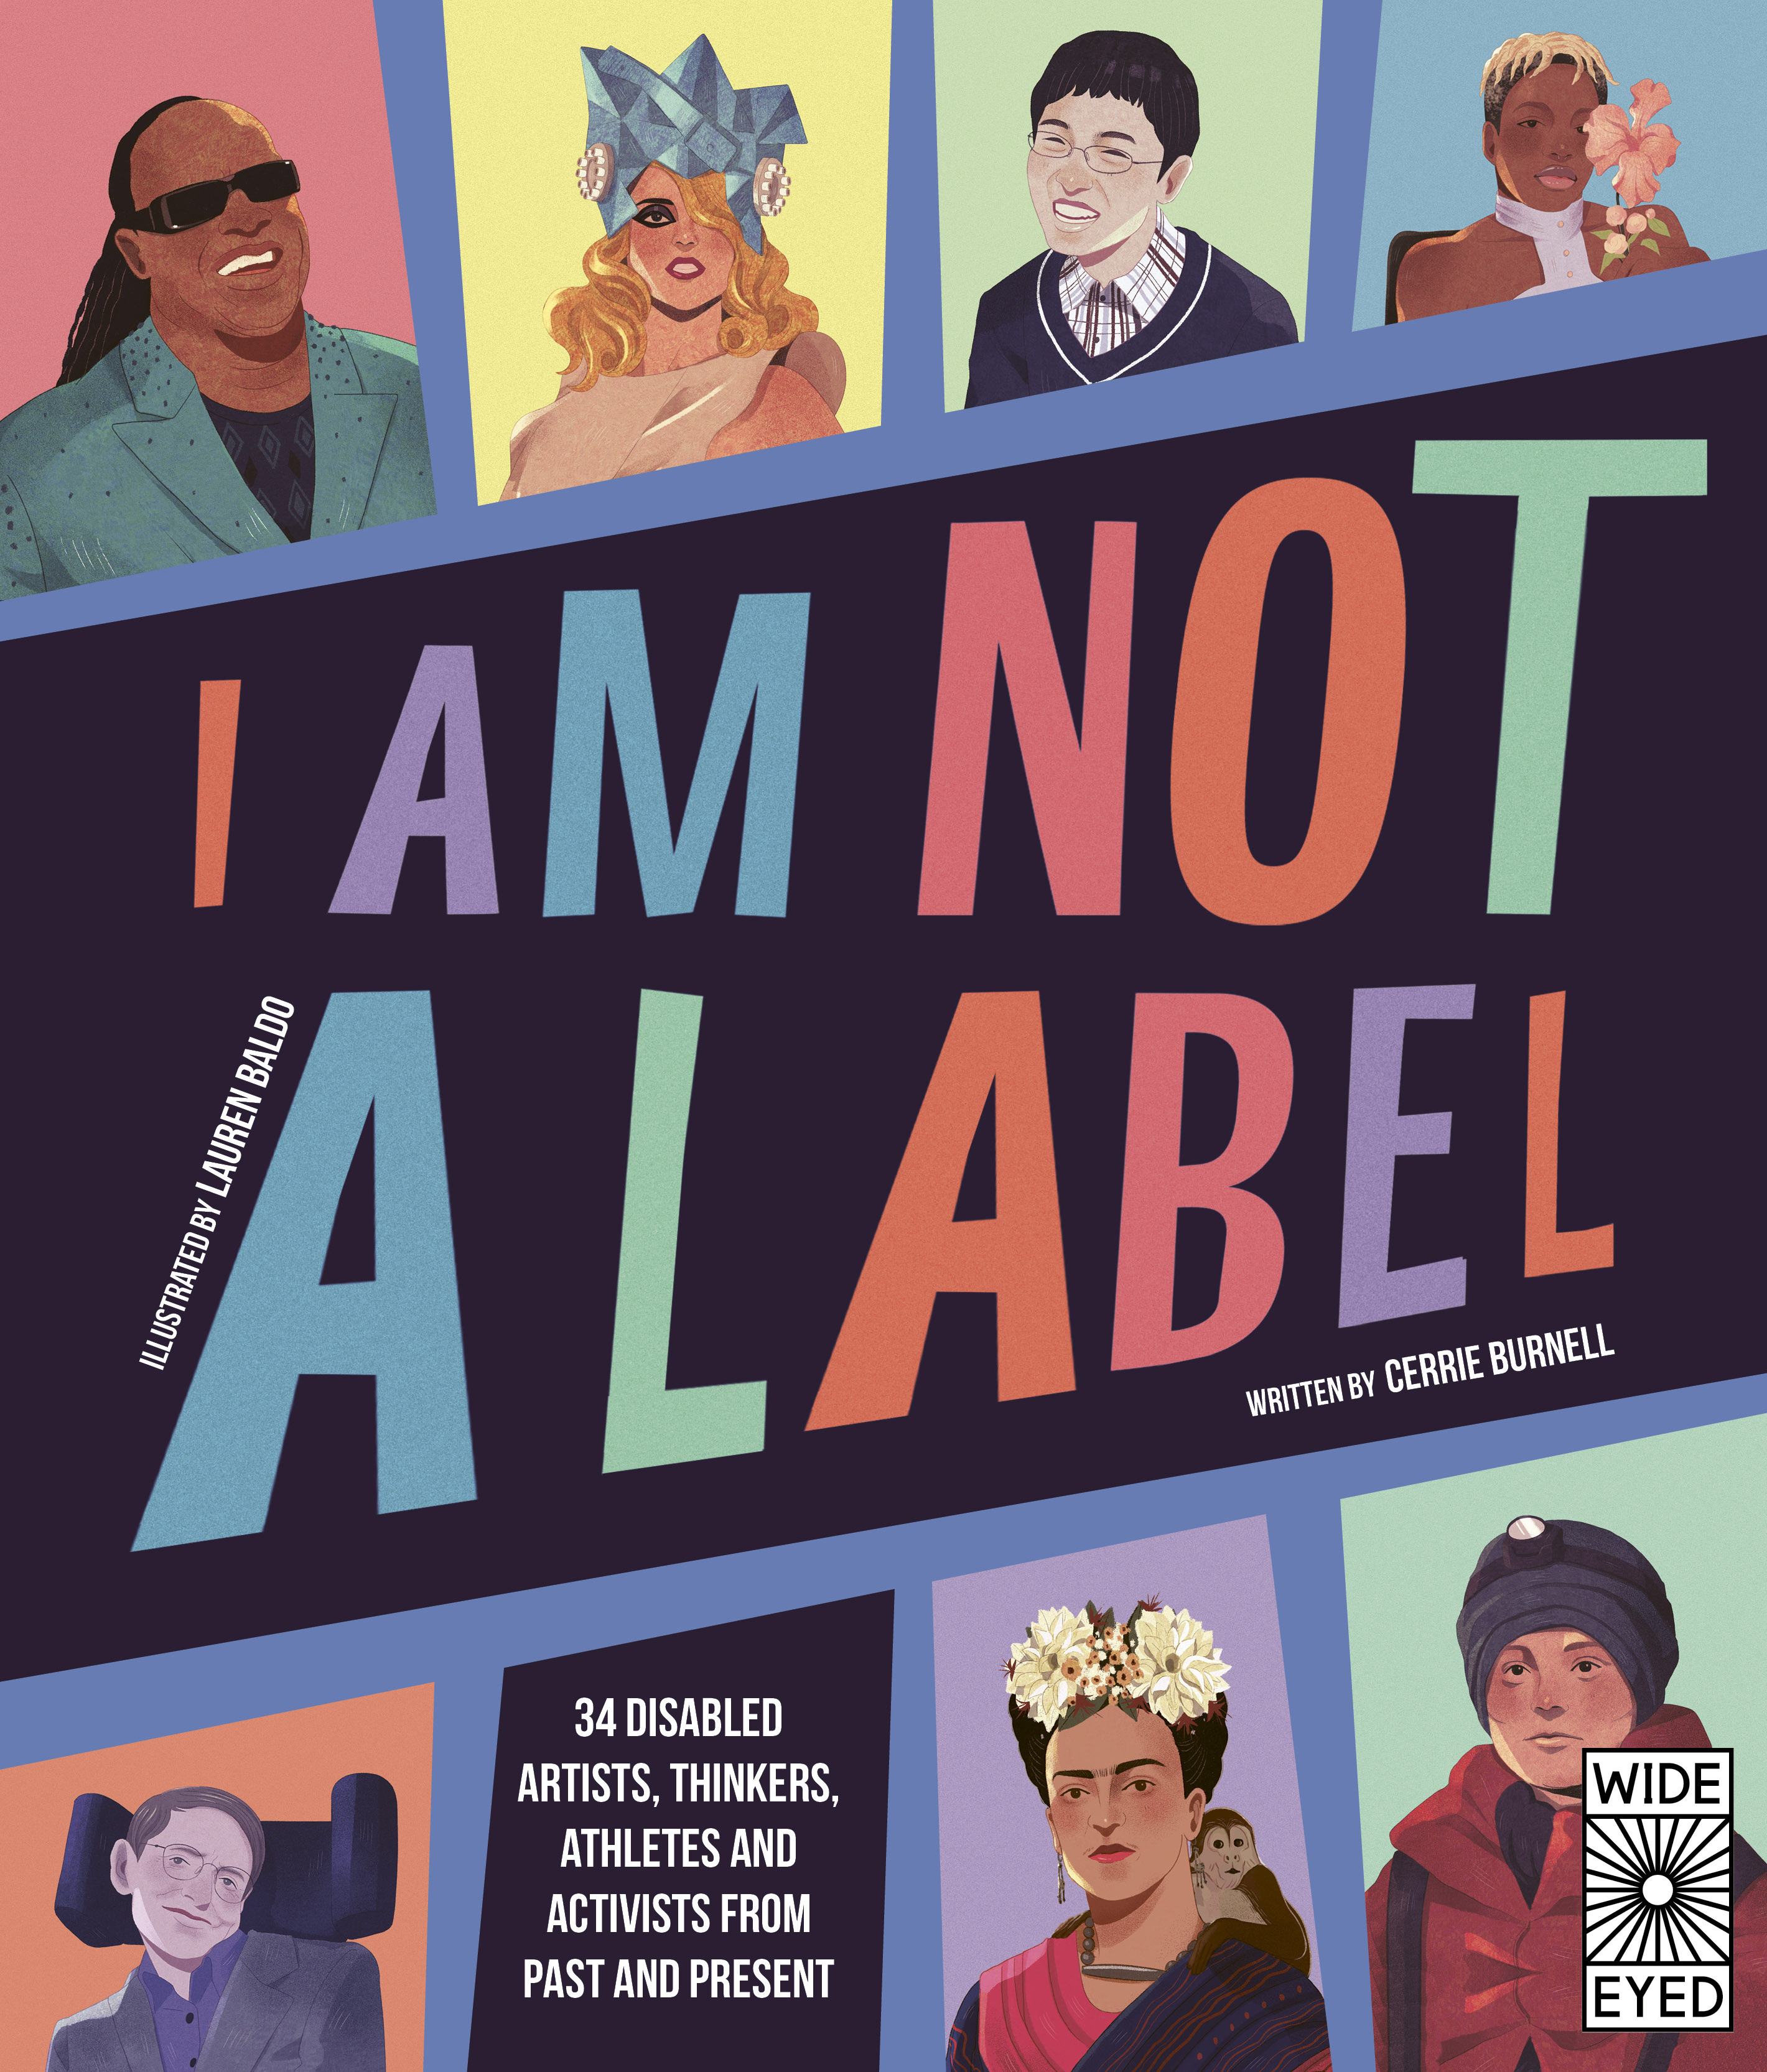 I AM NOT A LABEL by Cerrie Burnell and Lauren Baldo